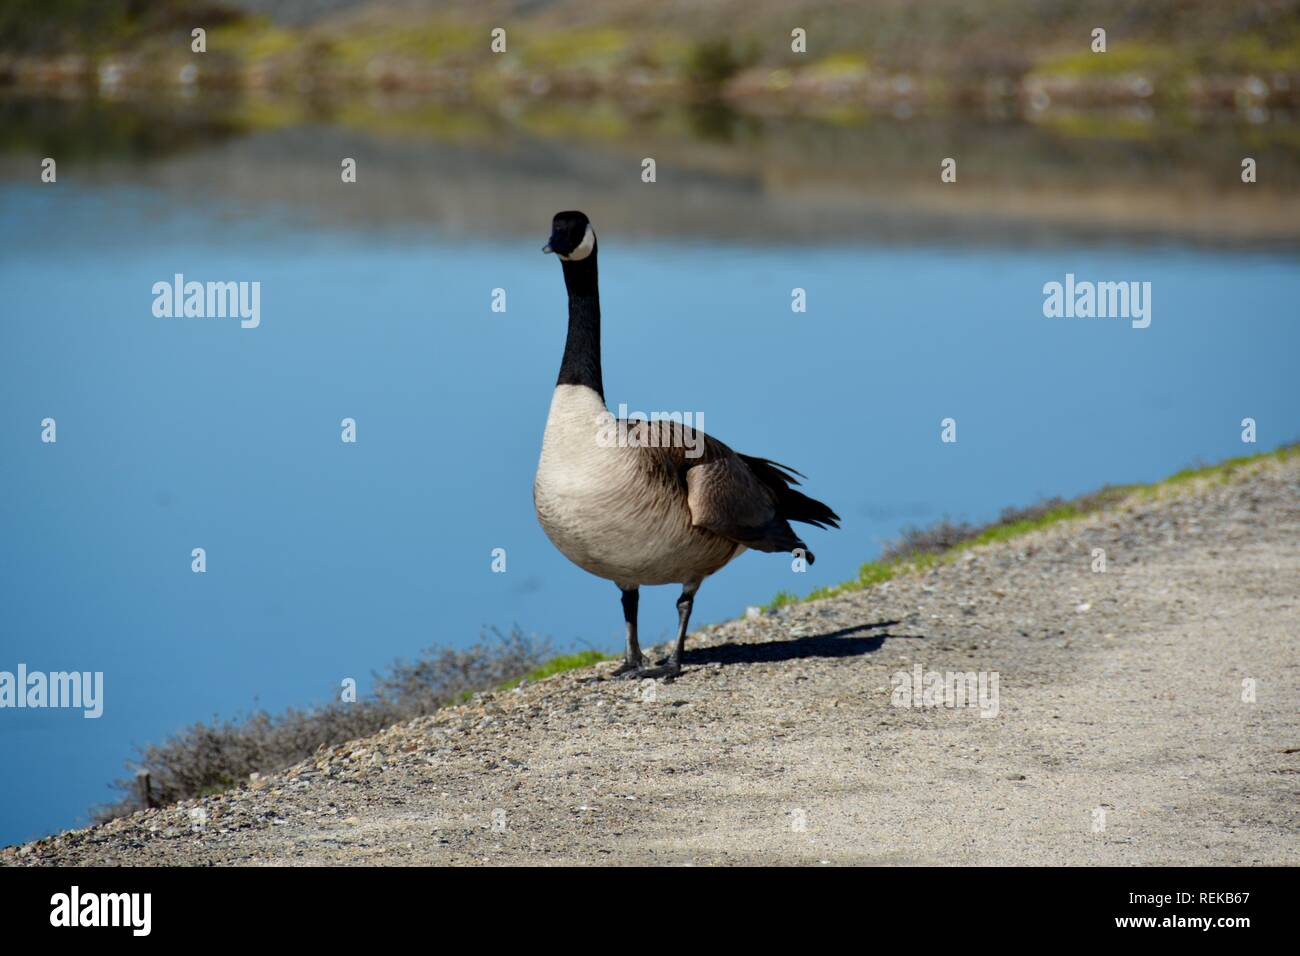 A Canada Goose standing near water's edge. Canada geese will attack people if they feel threatened, but this one just honked at me as he waddled past. Stock Photo